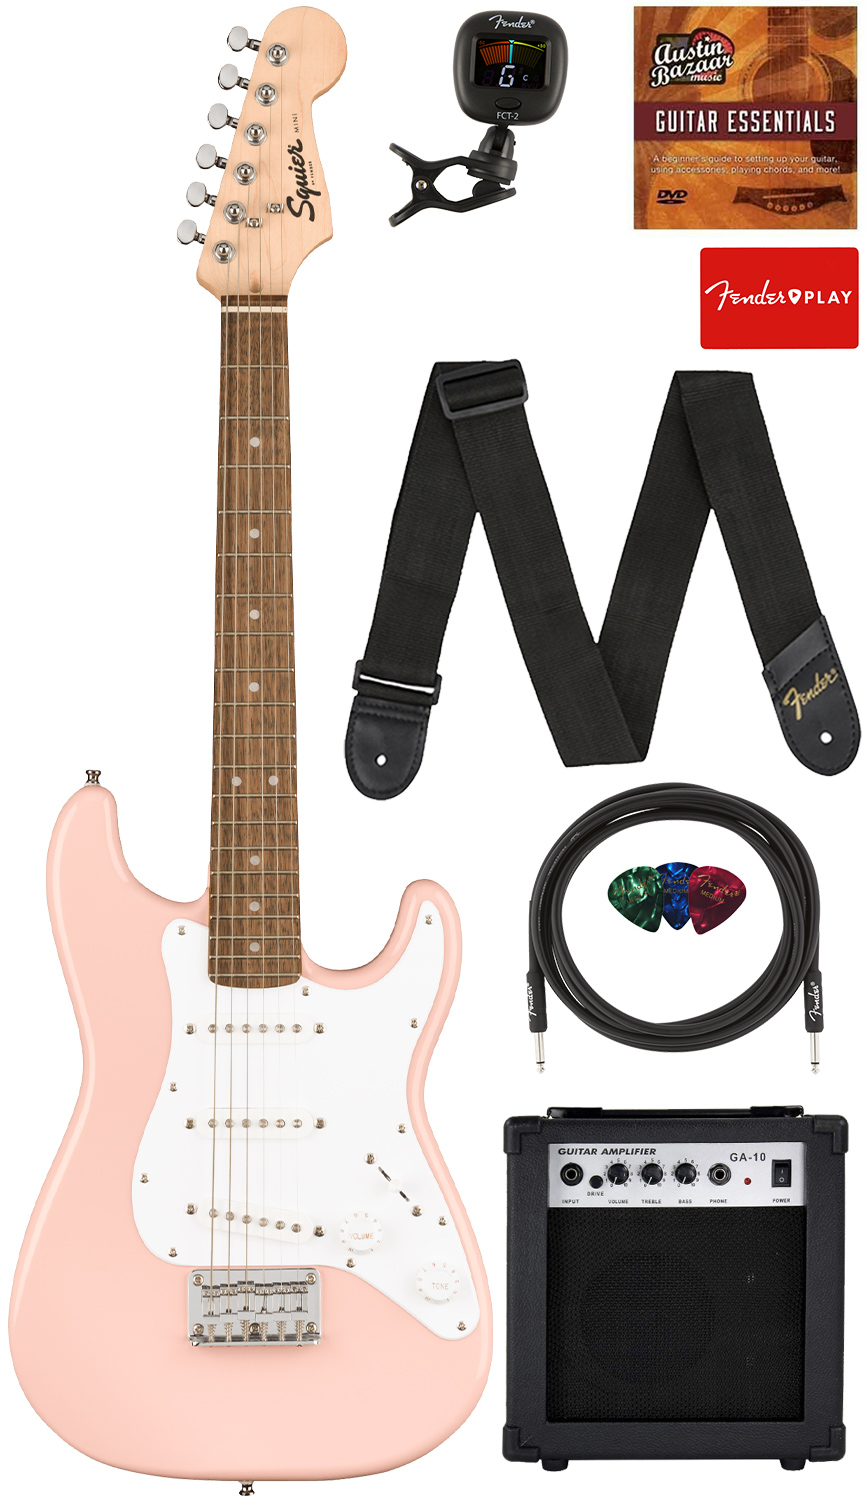 Fender Squier 3/4-Size Mini Stratocaster - Shell Pink w/ Amplifier